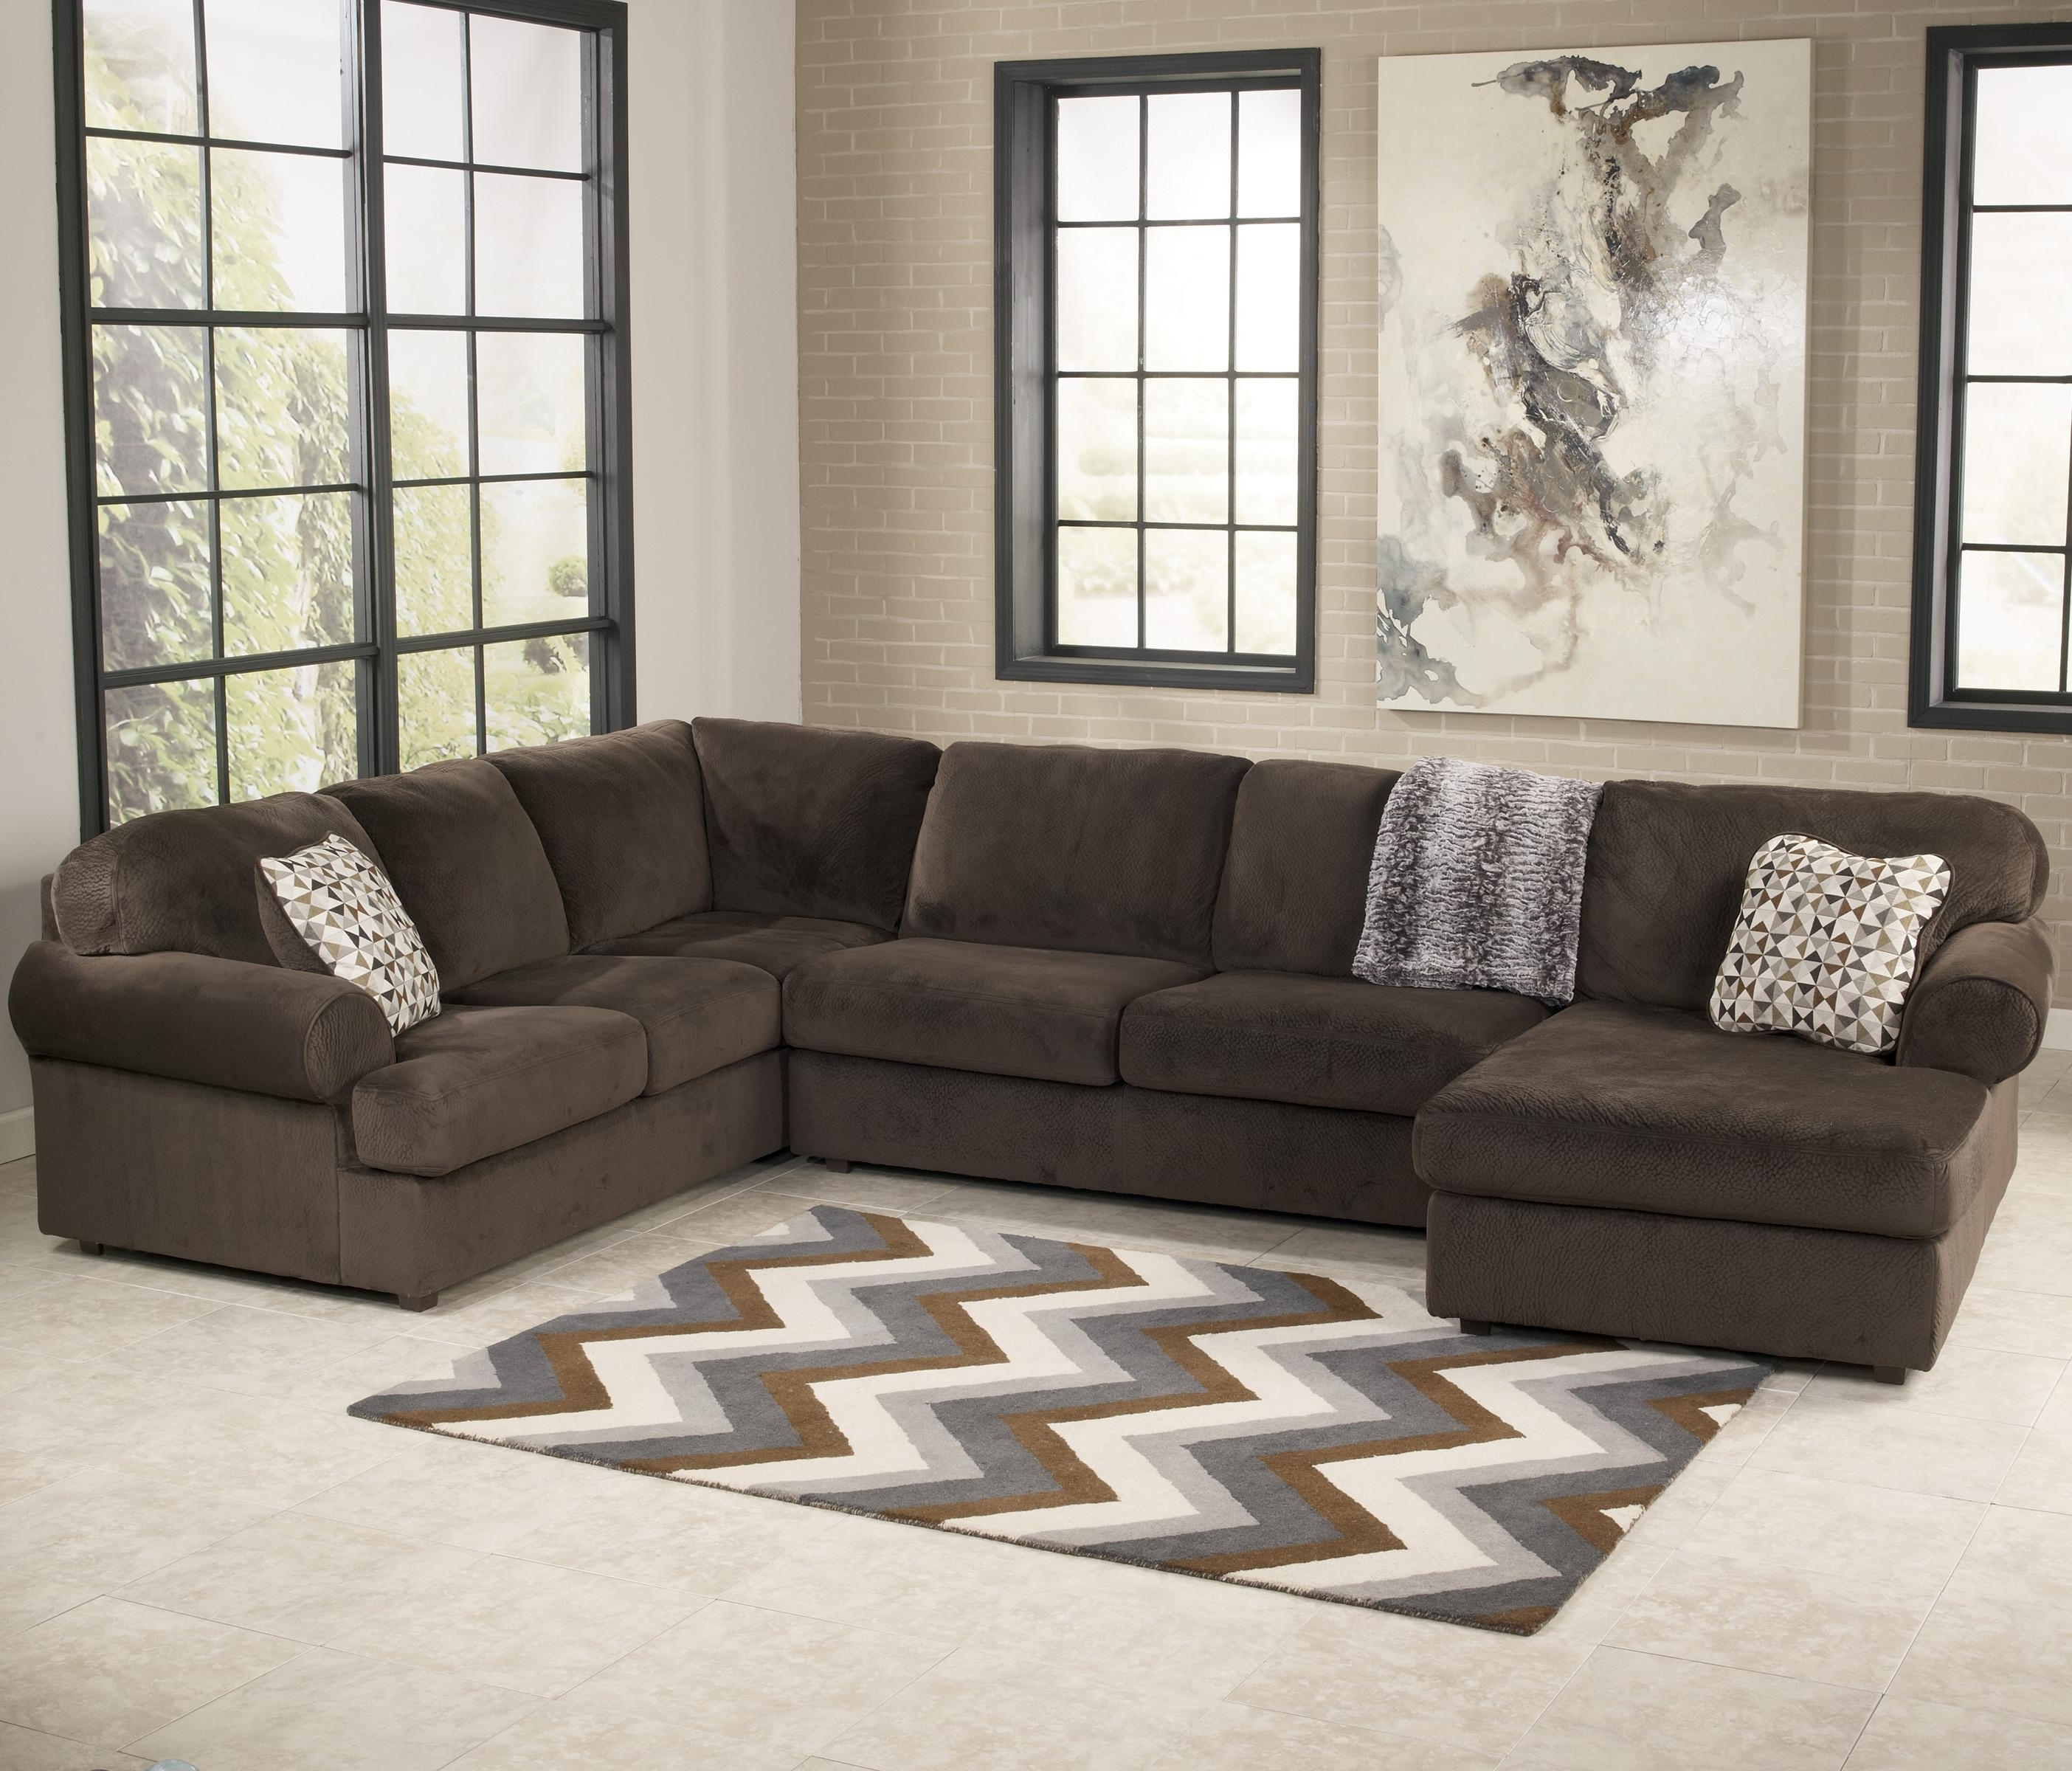 Ashley Furniture Sofa Chaises With Current Ashley Signature Design Jessa Place – Chocolate Casual Sectional (View 12 of 15)